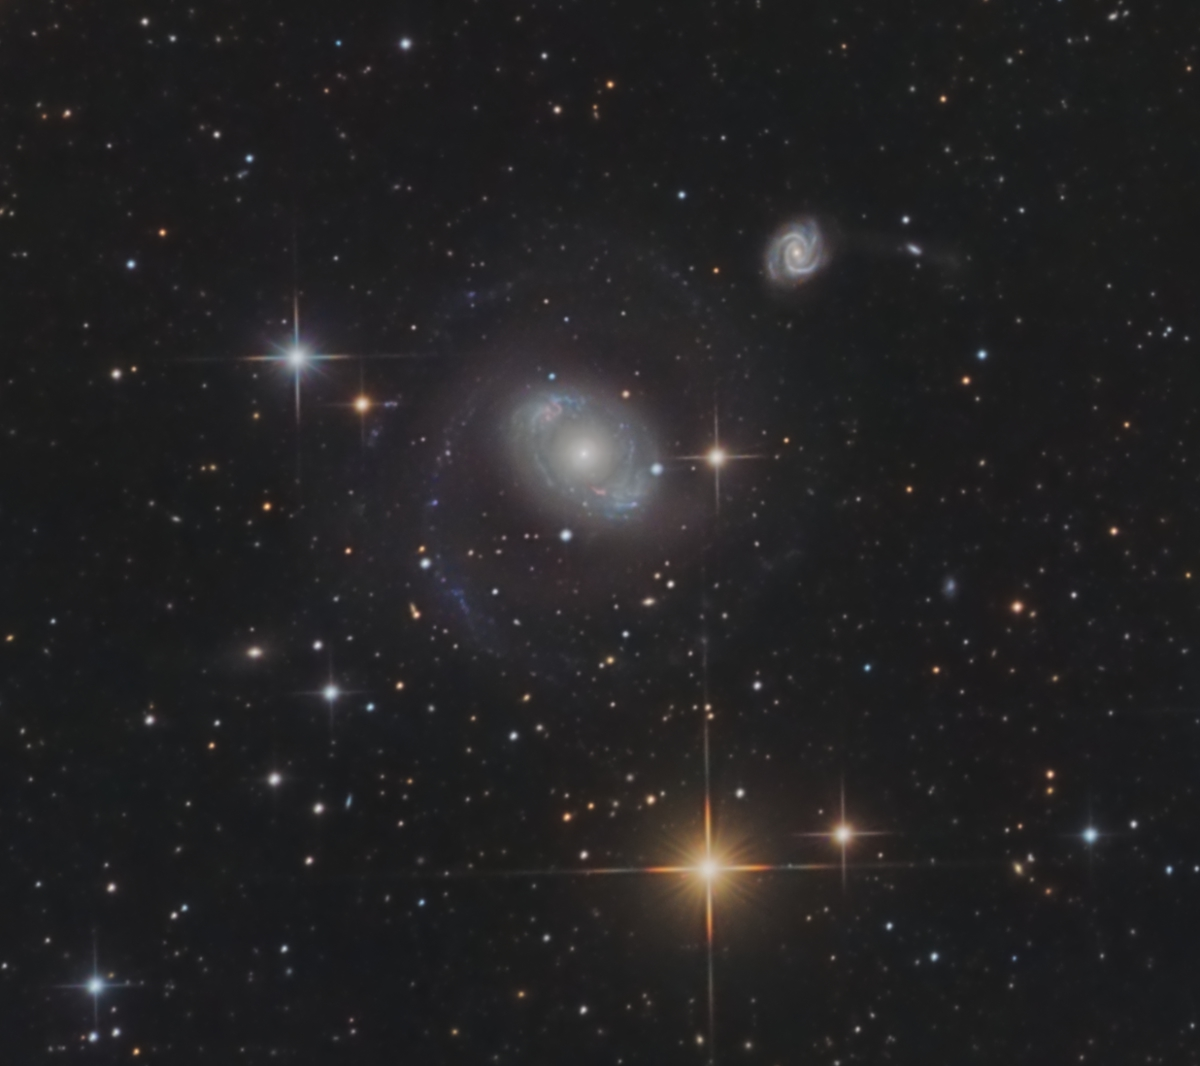 NGC 4151 and Friends (HaLRGB)